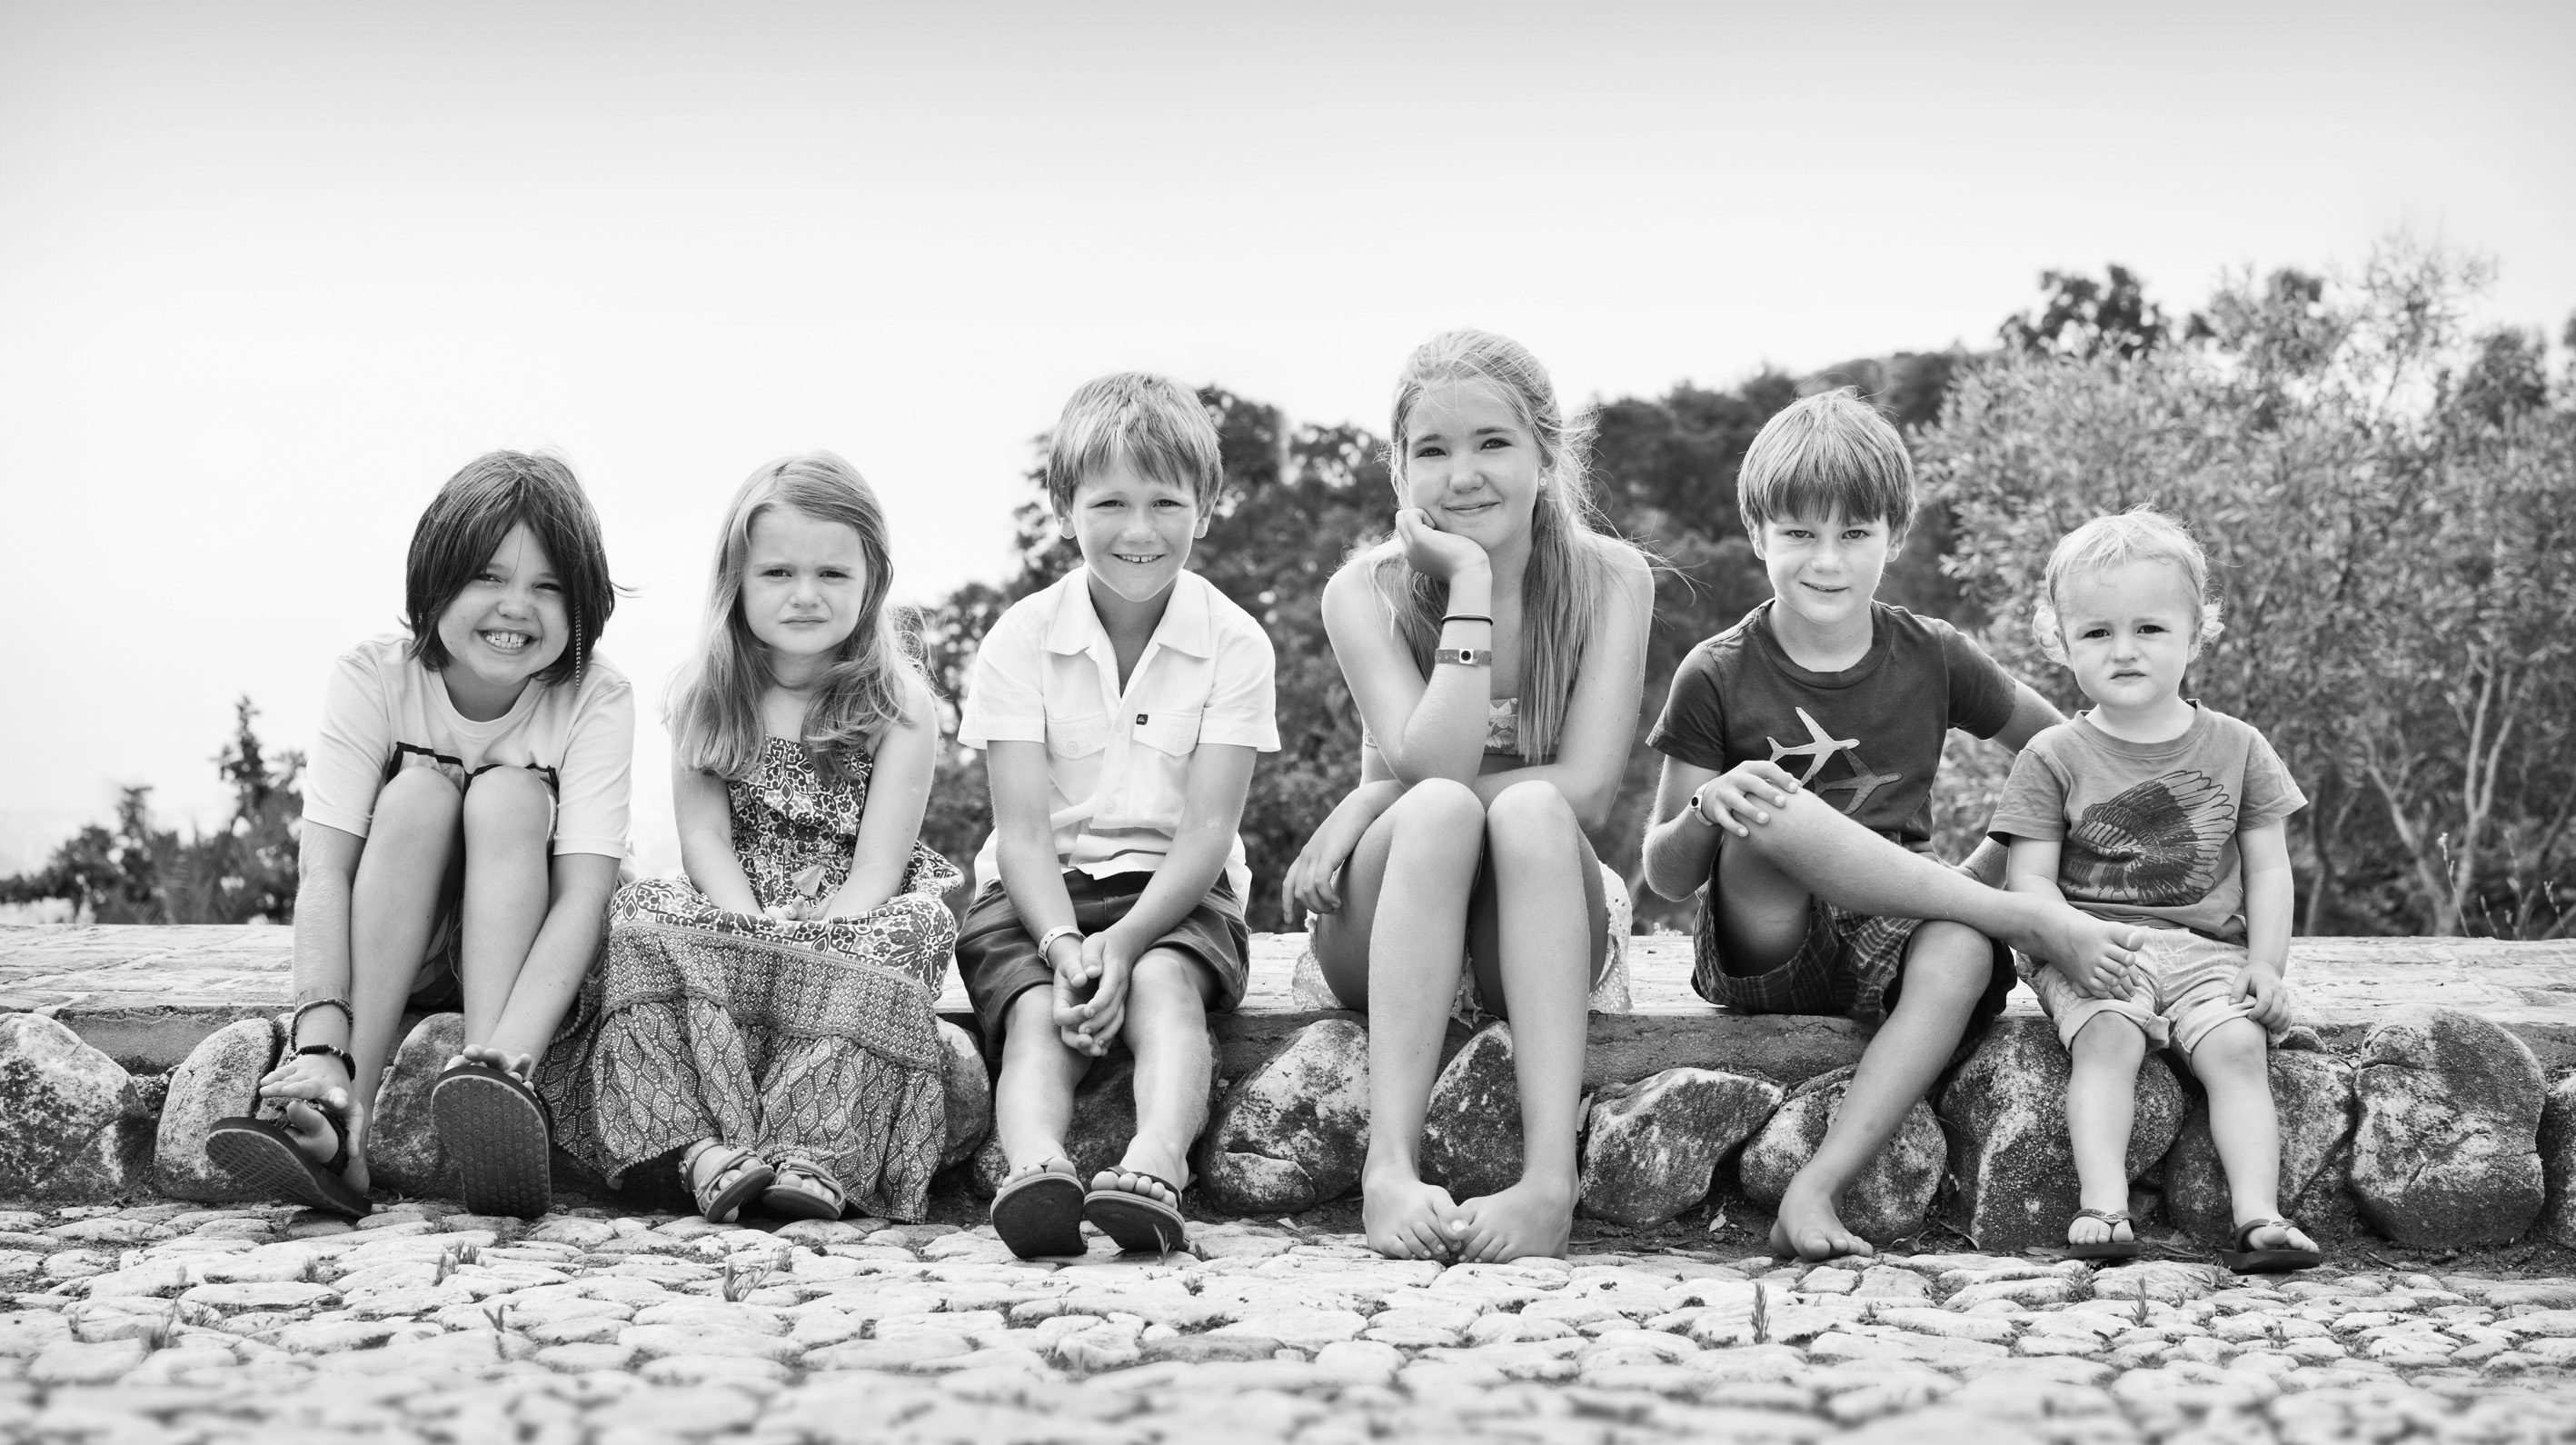 Family Holiday Portrait, Summer times, Portraits on holiday, professional portraits Marbella, remember this?, Best memories, when I was a kid,